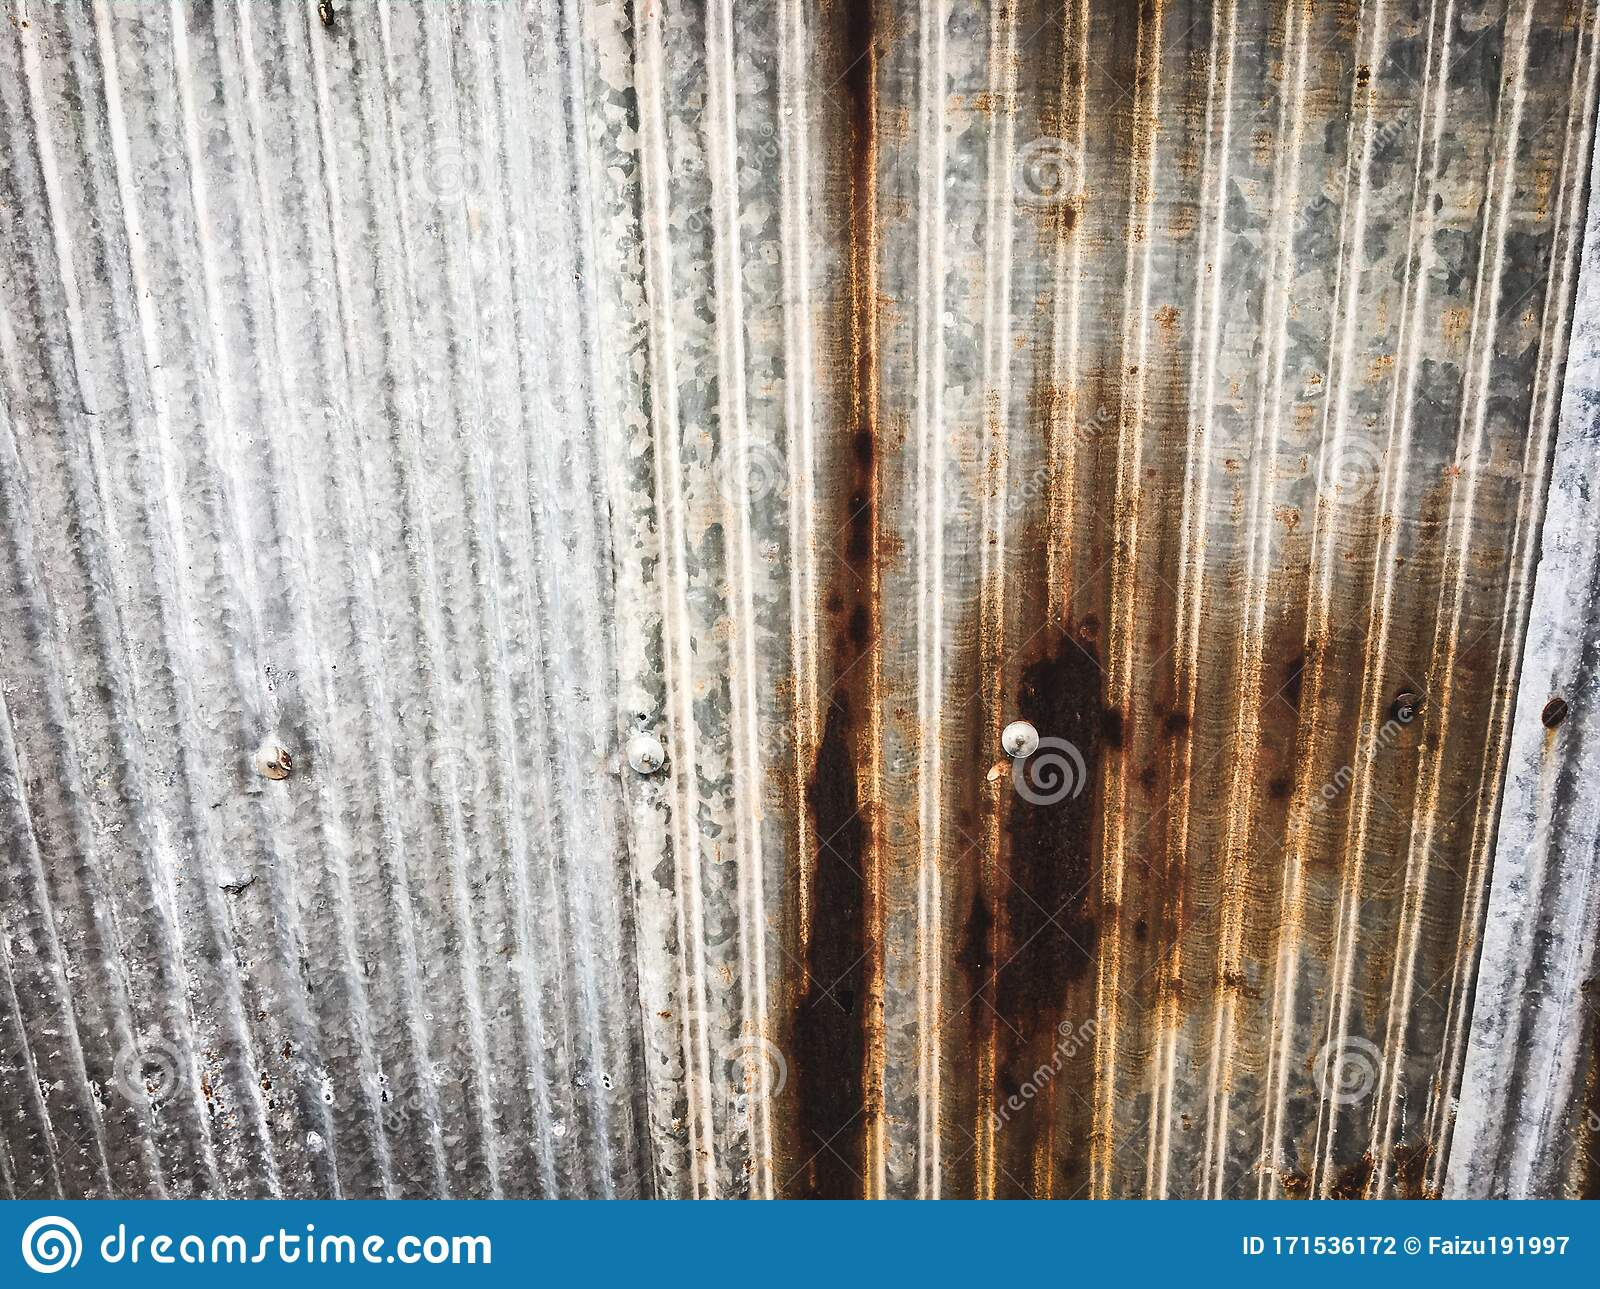 Old Zinc Sheet Roof Texture Background For Work And Design Stock Photo Image Of Surface Work 171536172